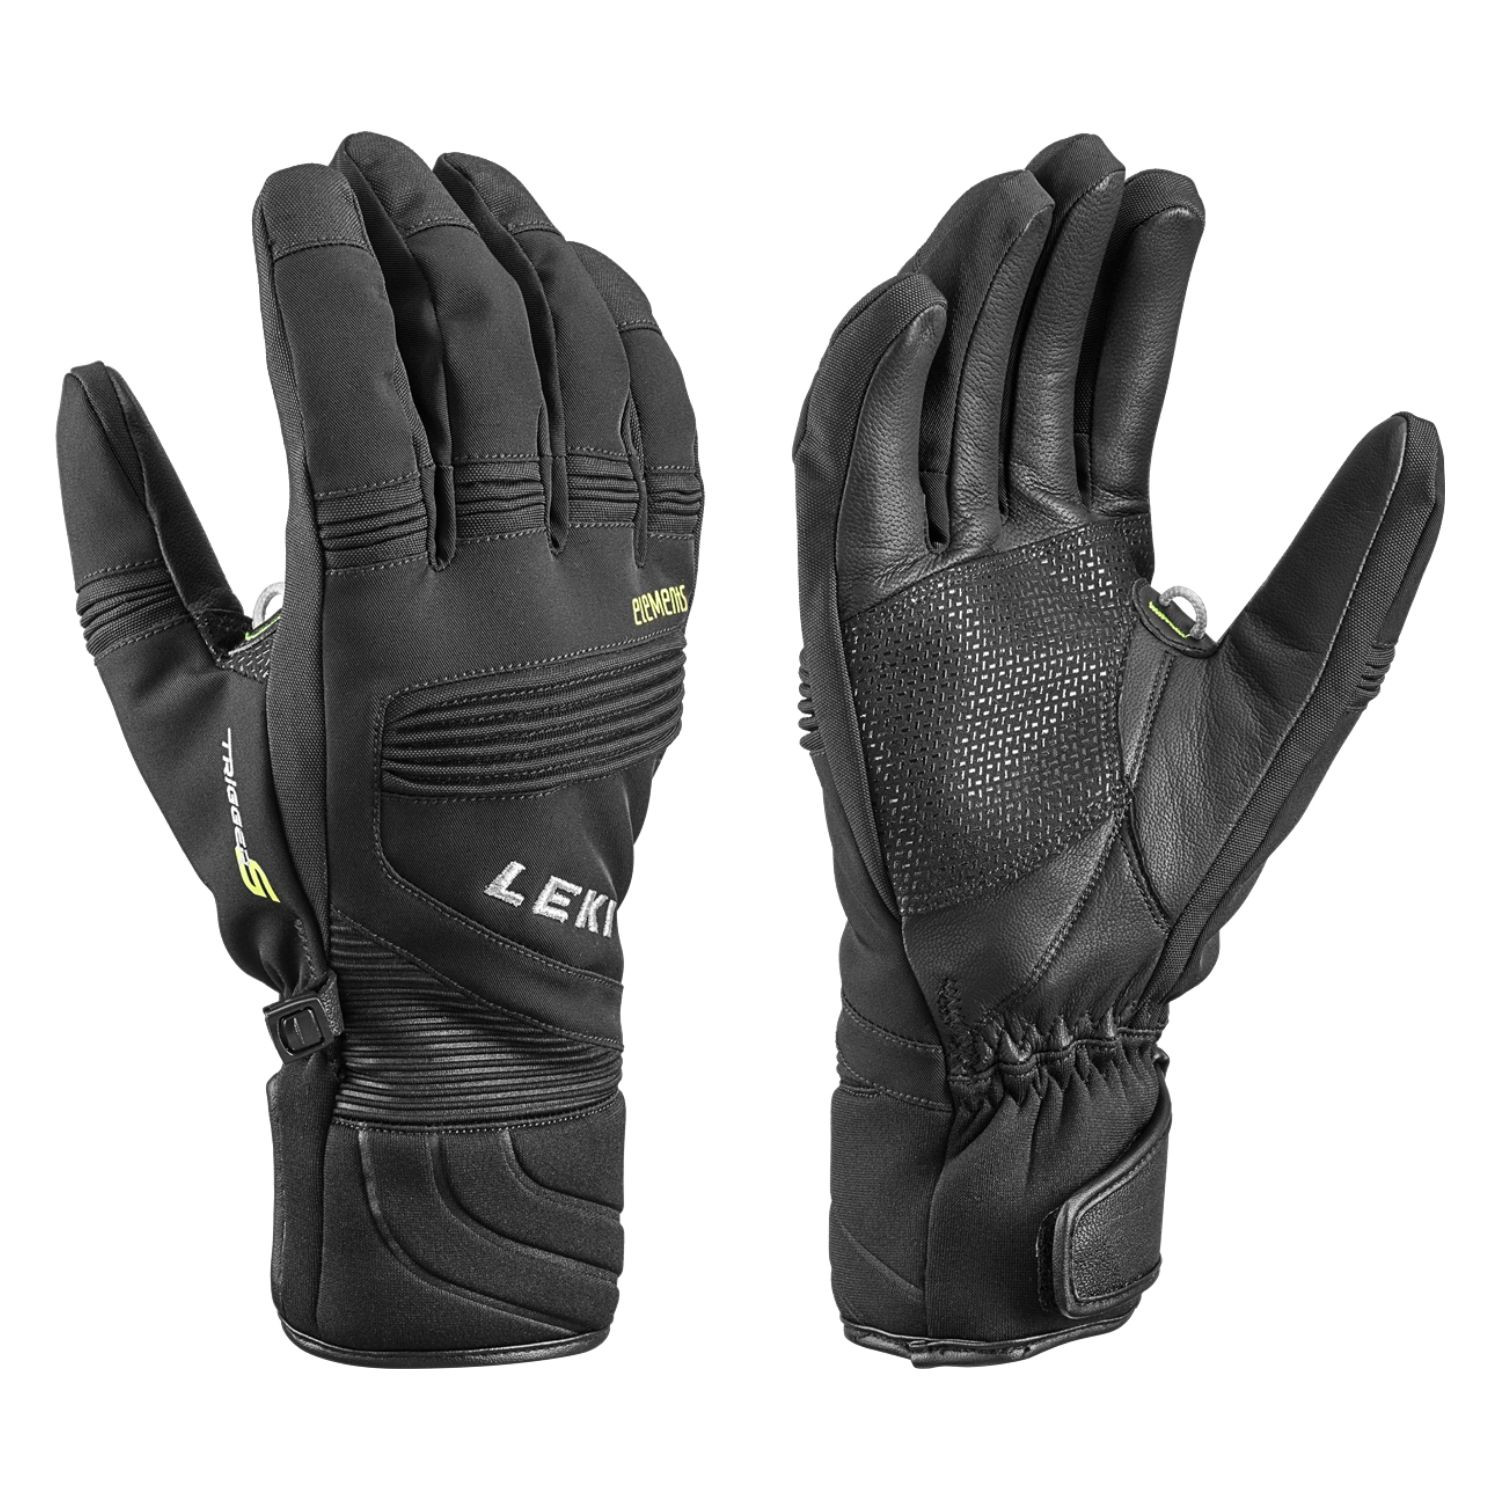 Rukavice LEKI Elements Palladium S Black Čierna 10,5